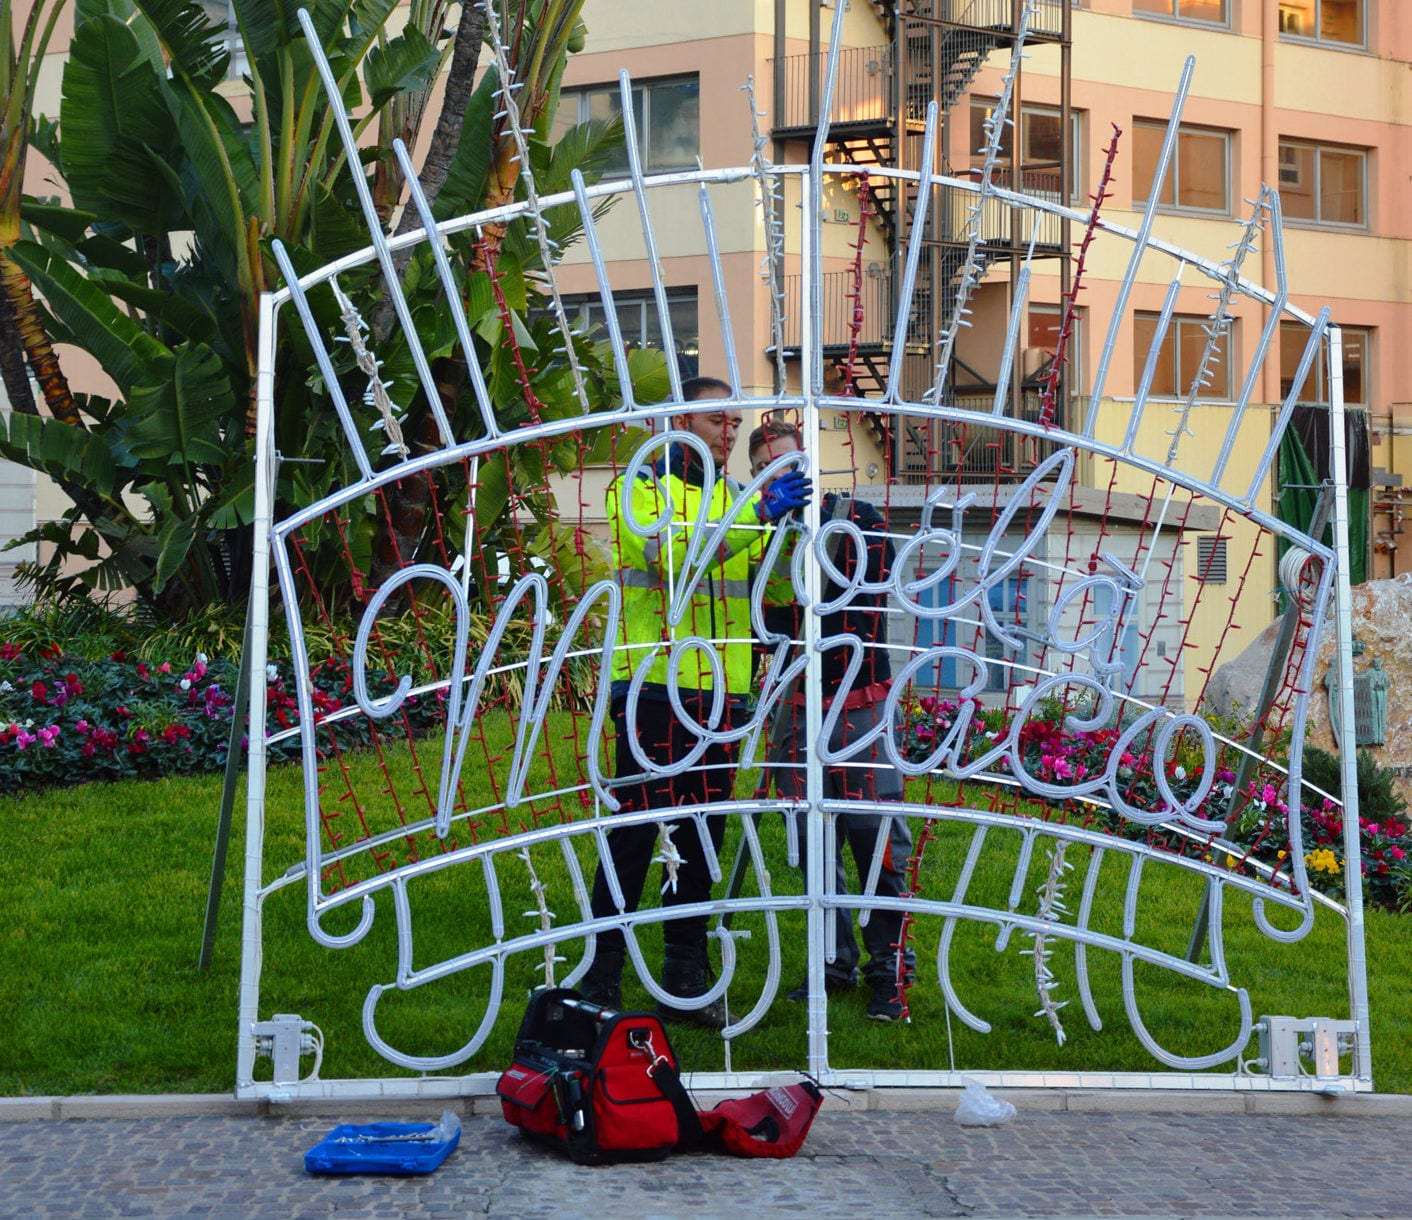 Christmas light installation begins. Photo: Mairie de Monaco